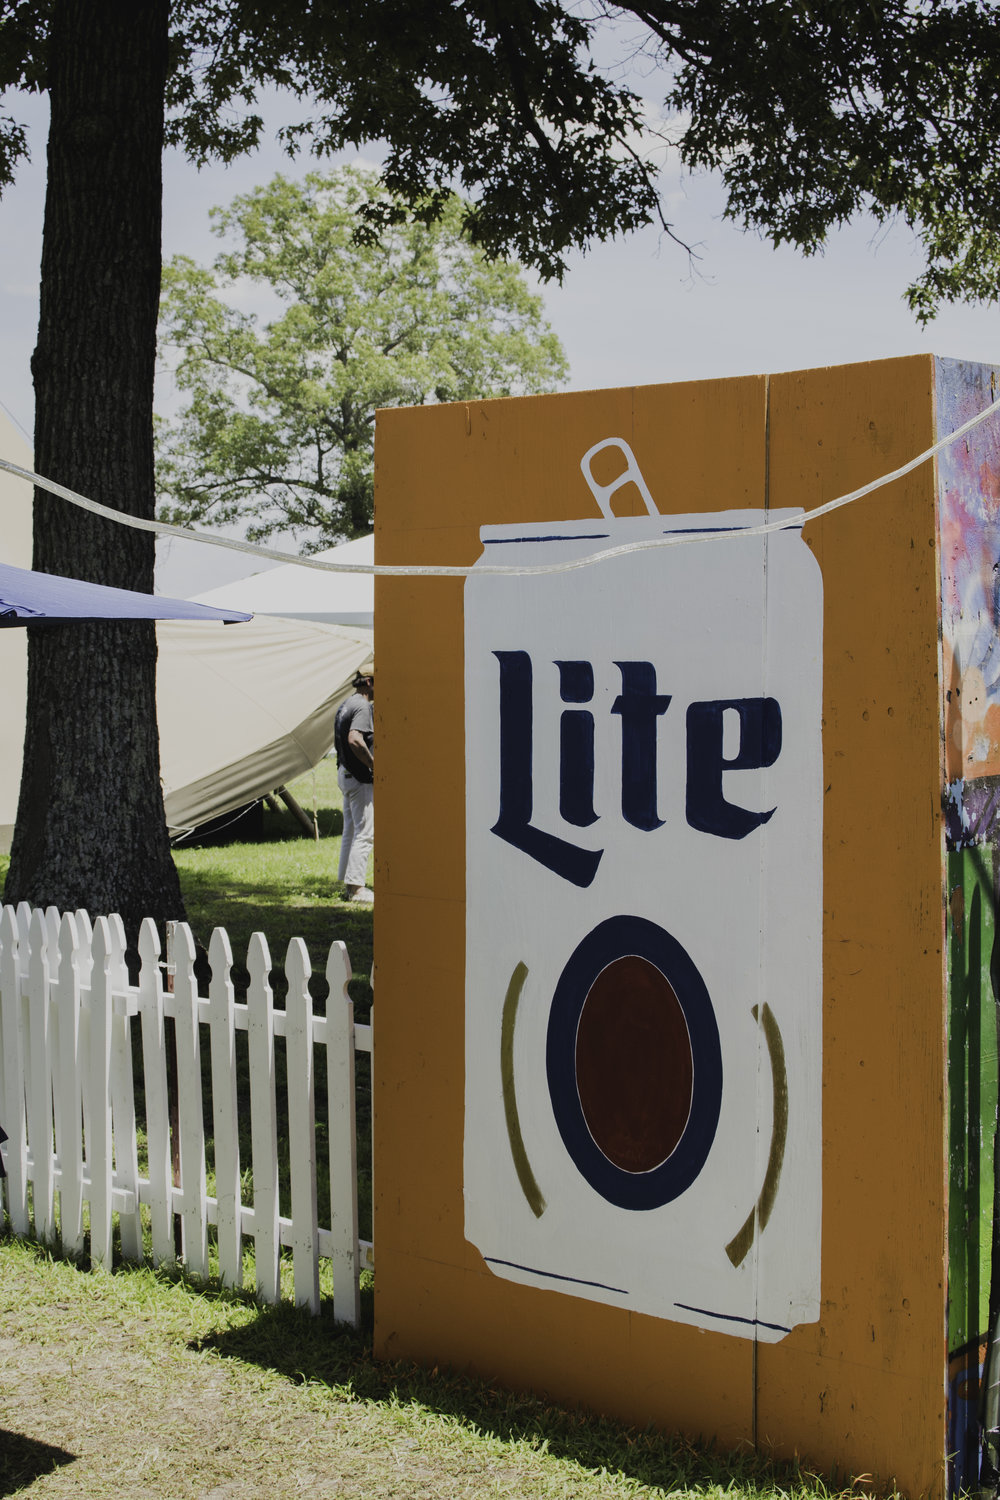 miller lite can sign.jpg